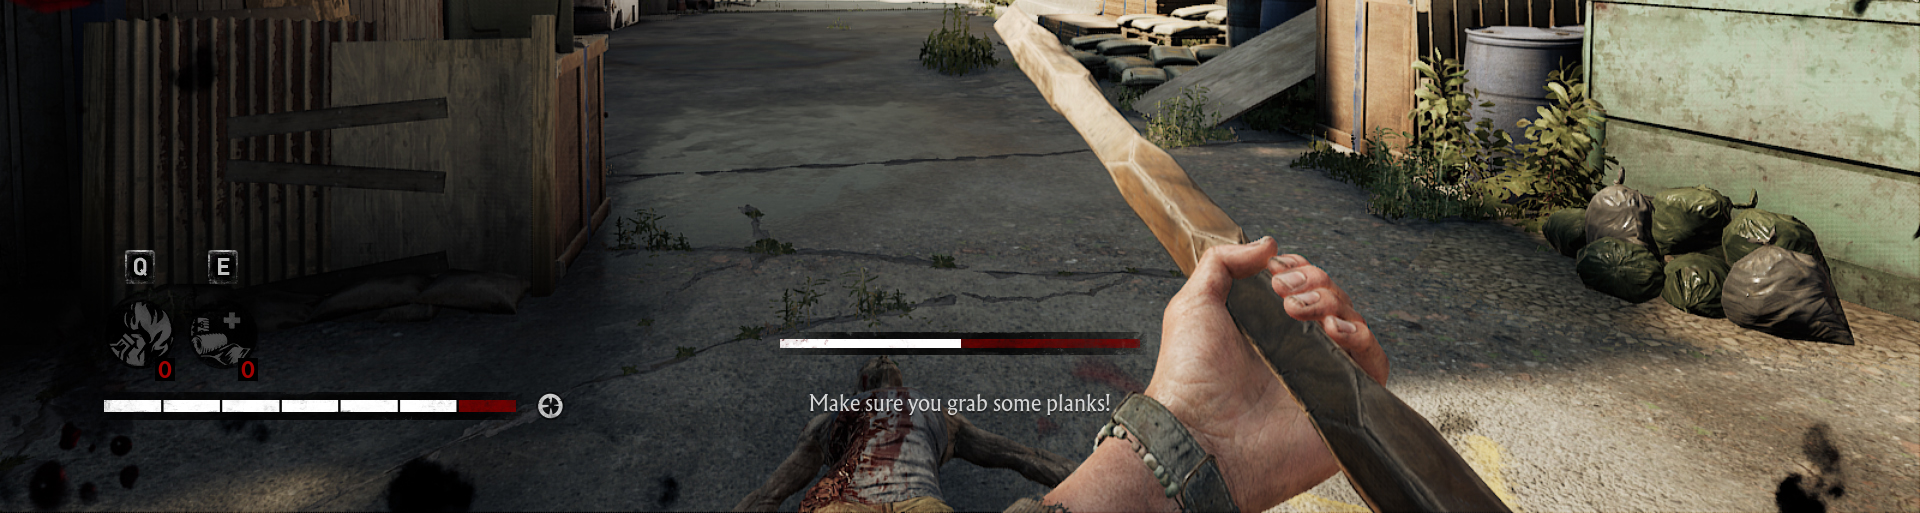 Understanding the Process Behind Creating and Designing Subtitles in Video Games